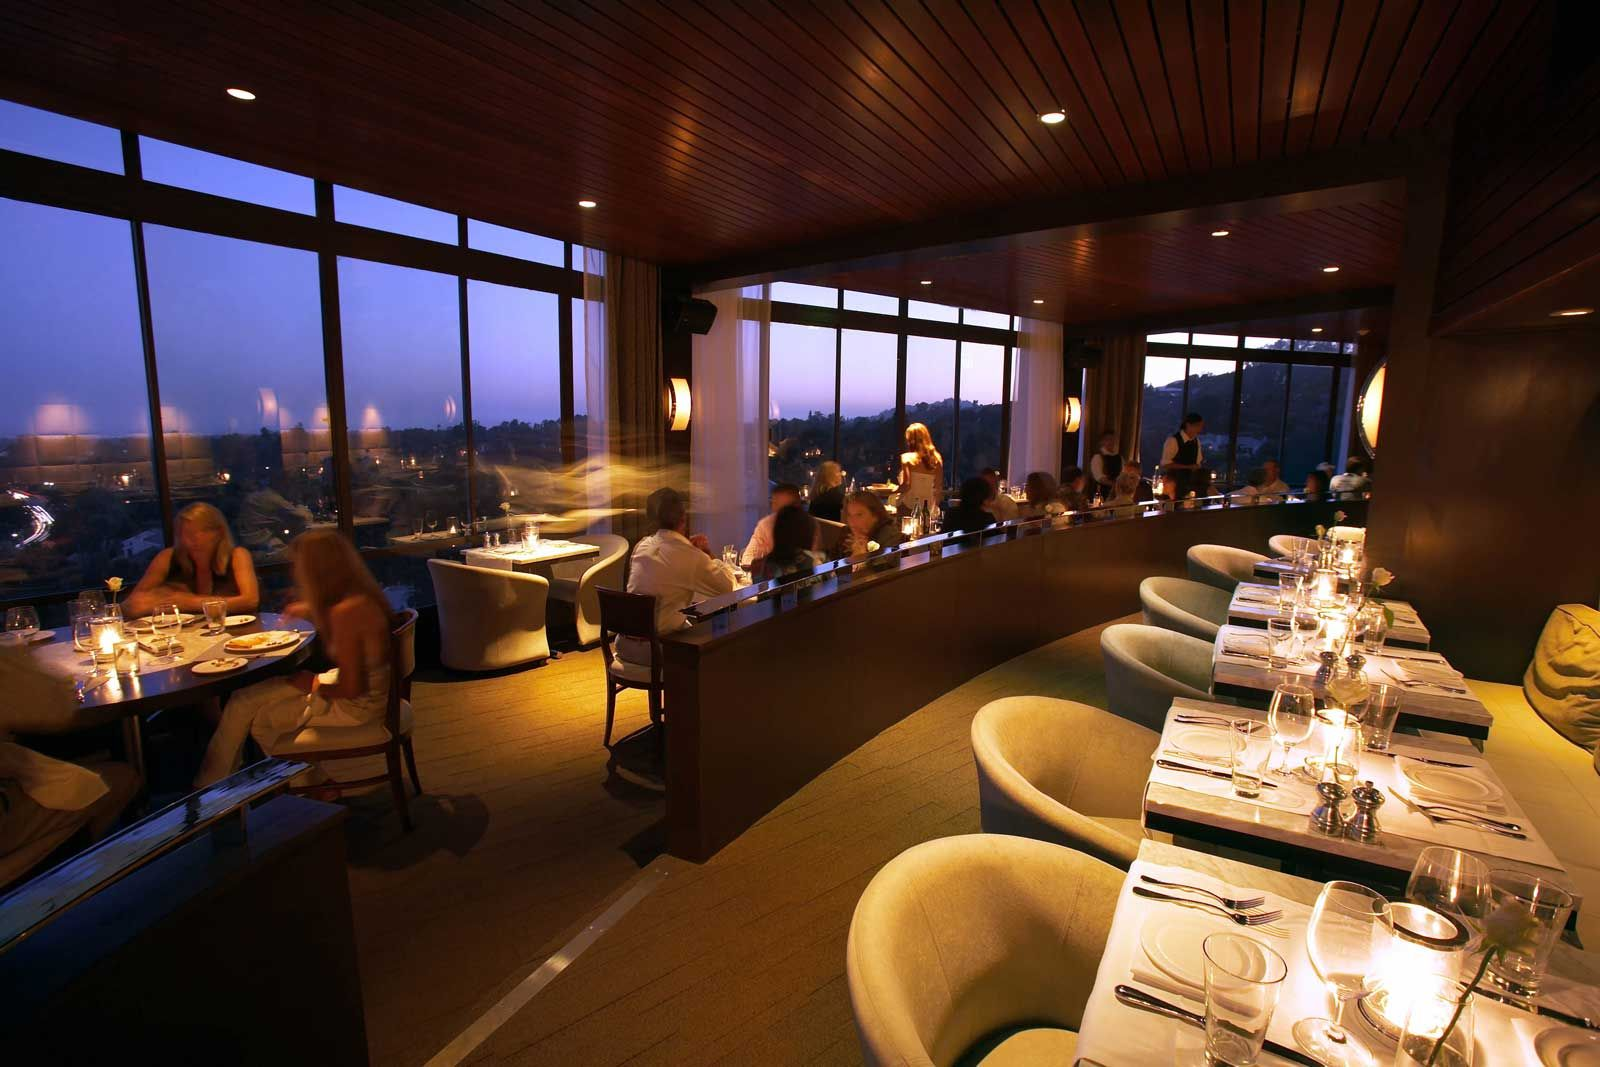 West Restaurant Located On The Top Floor Of The Hotel Angeleno Offers Stunning Panoramic Views Of La Hotel Hotel Restaurant Best Rooftop Bars